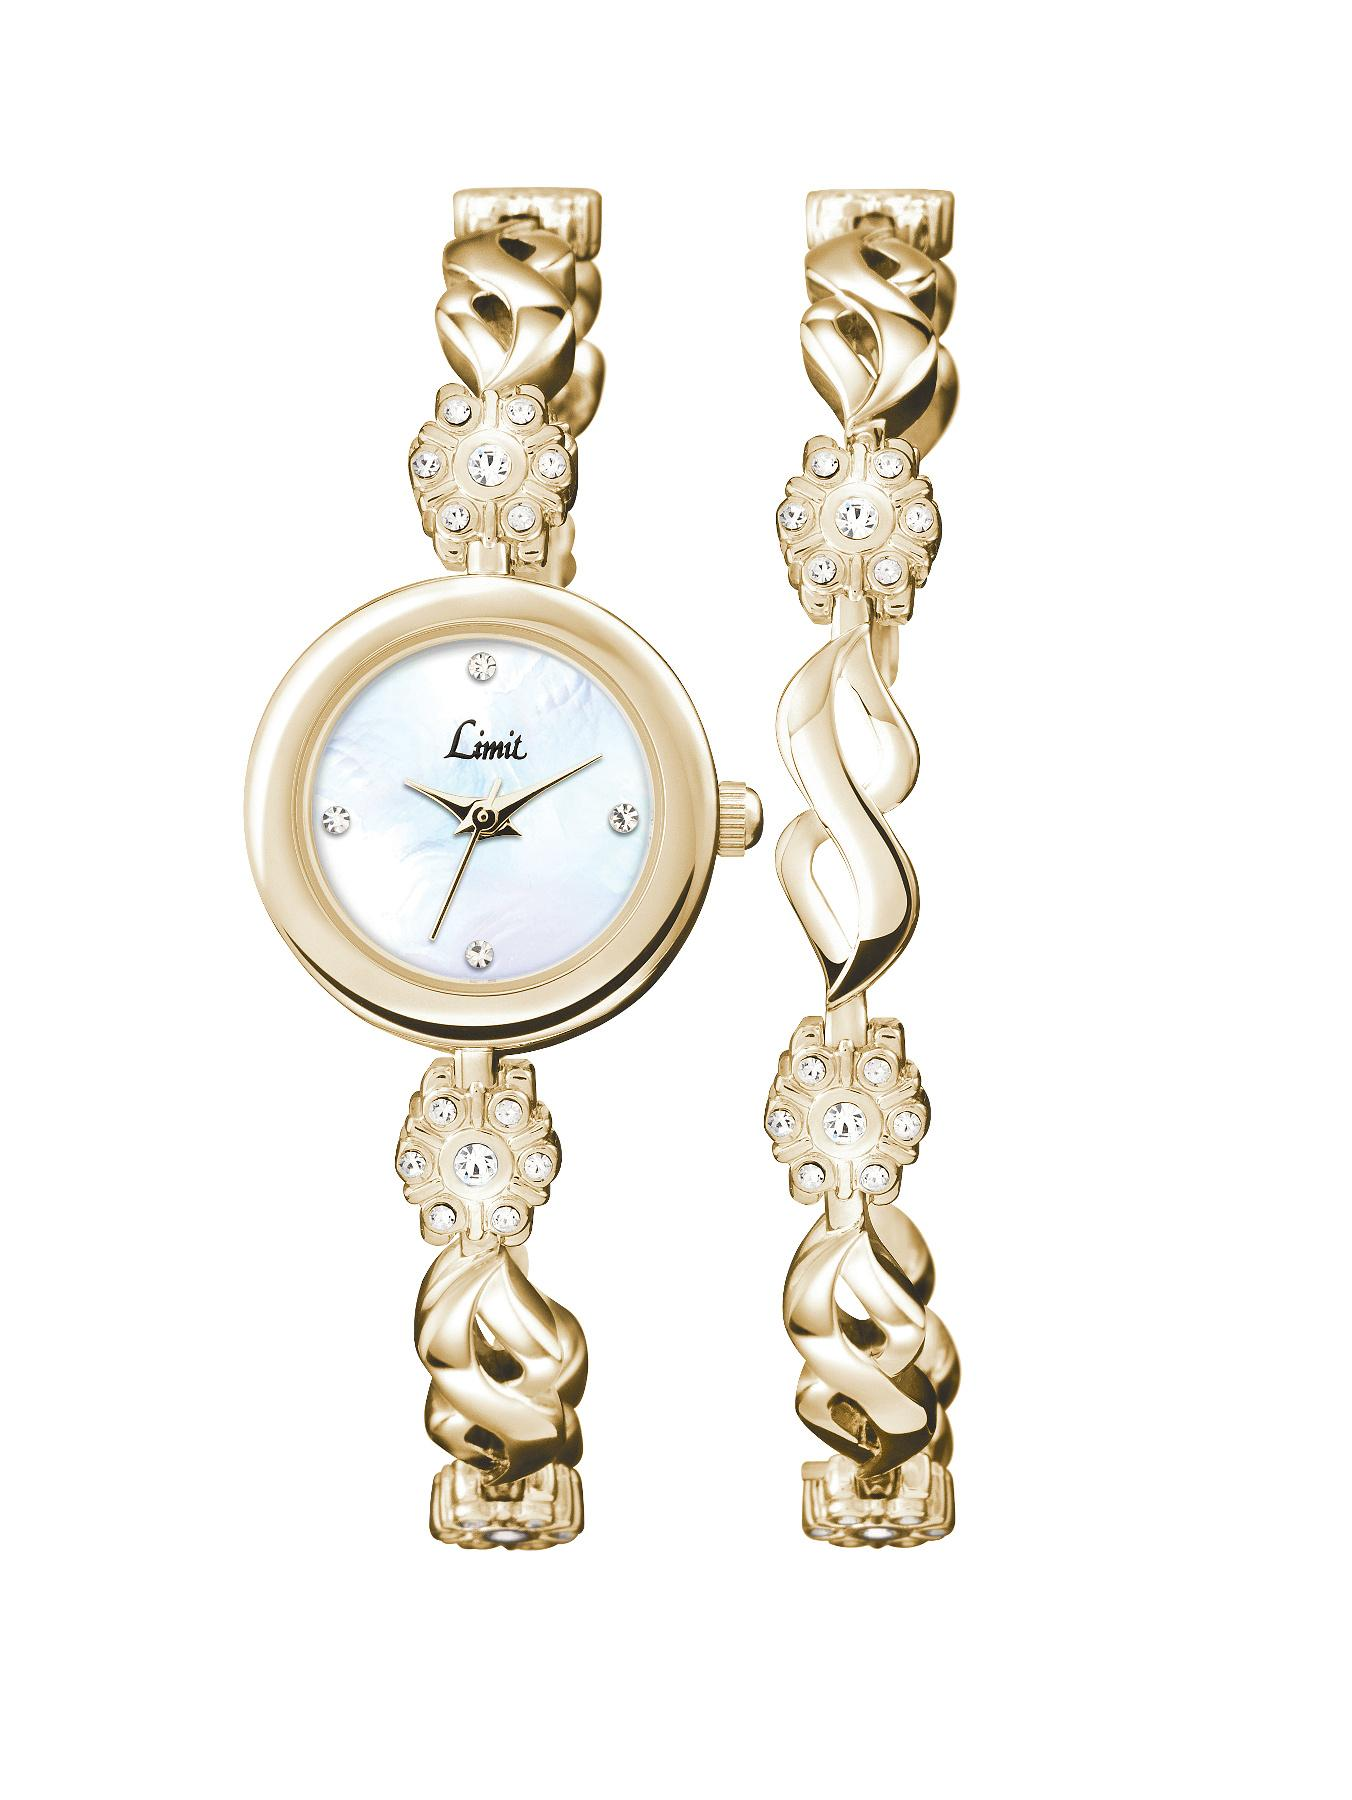 Gold Tone Stone Set Ladies Watch and Matching Bracelet Gift Set at Littlewoods